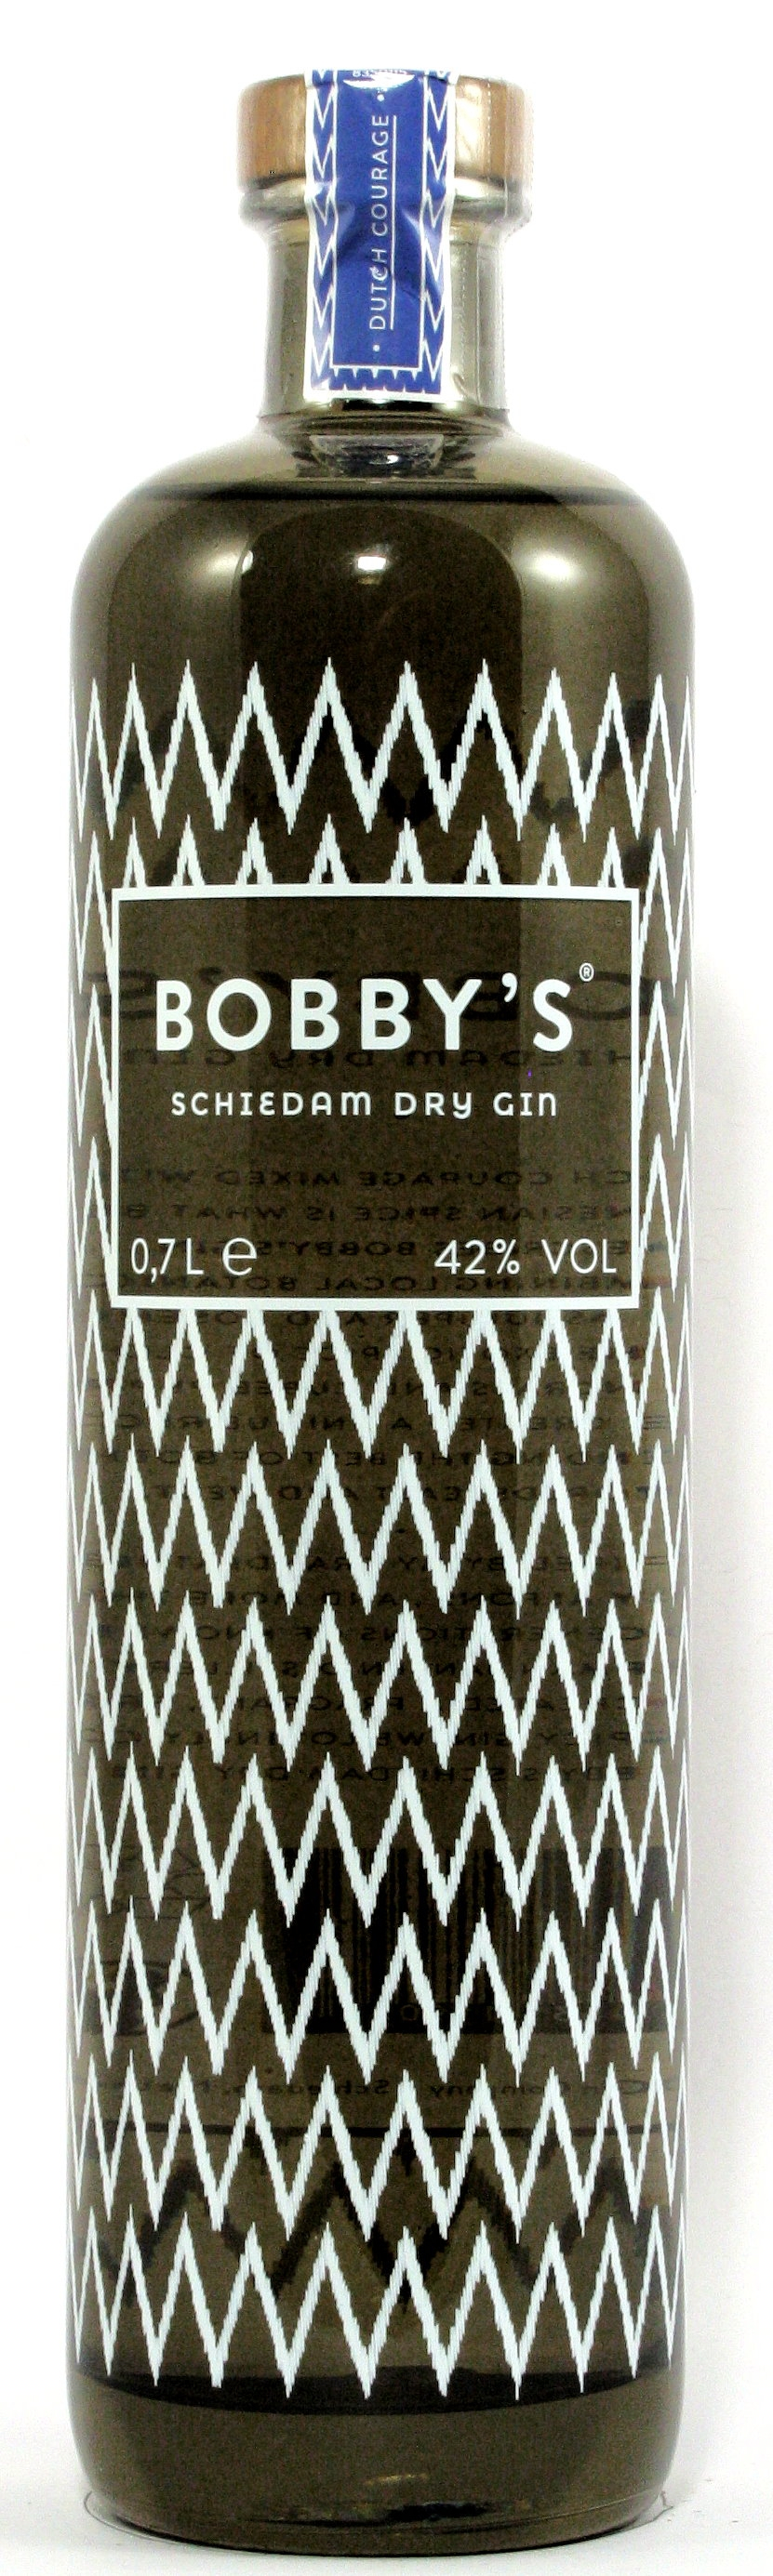 Bobby's Dry Gin, Holland